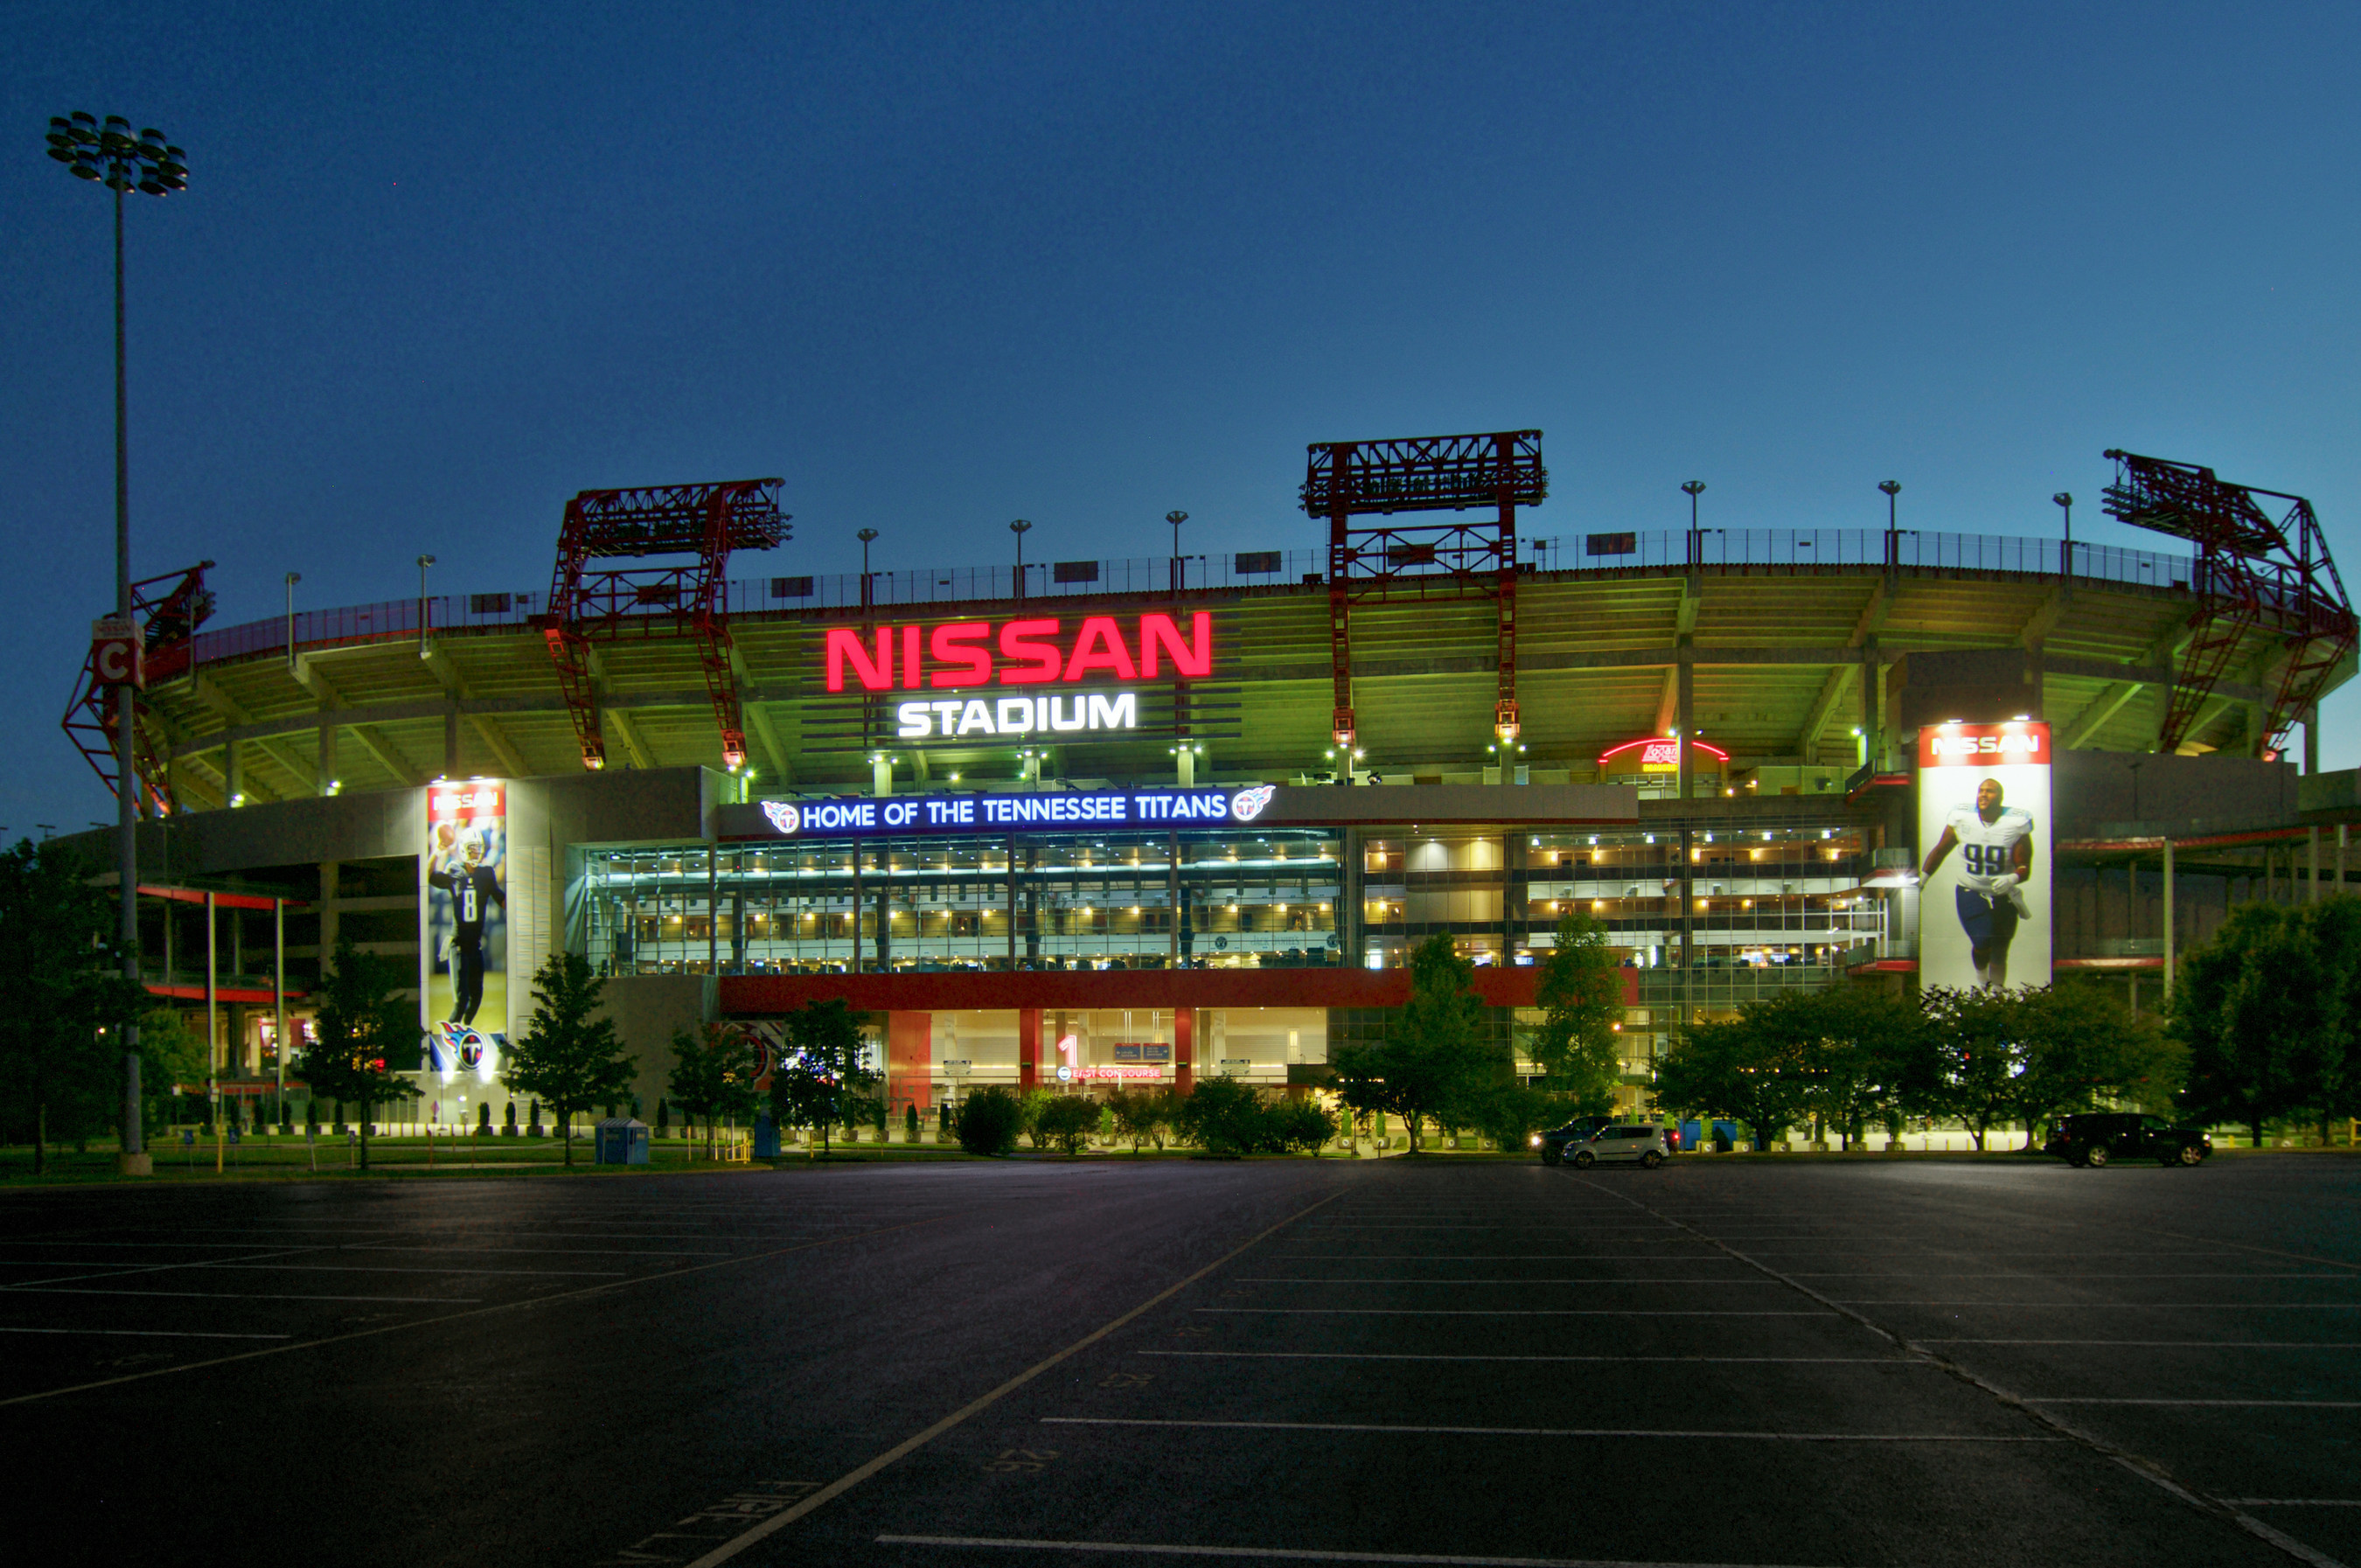 Nissan Stadium, home of the NFL's Tennessee Titans(R), which has installed LG's new highly efficient LED retrofit fixtures as part of the stadium's plans to convert its existing lighting to LED solutions using LG's Sensor Connect High Bays.